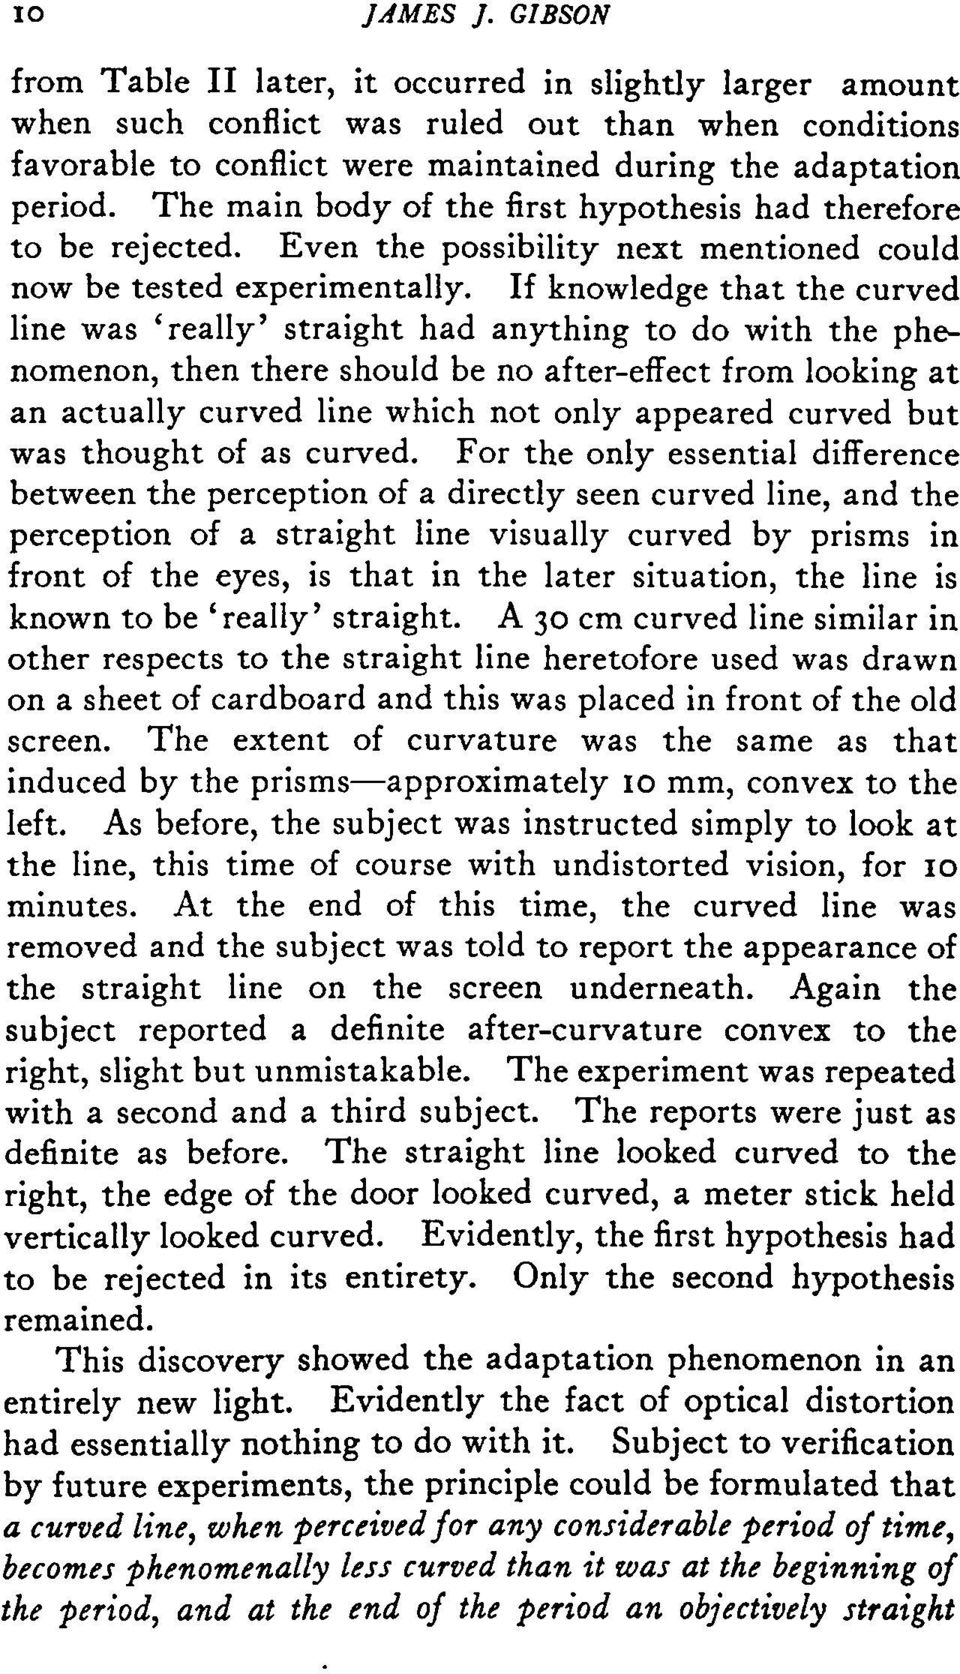 If knowledge that the curved line was 'really' straight had anything to do with the phenomenon, then there should be no after-effect from looking at an actually curved line which not only appeared